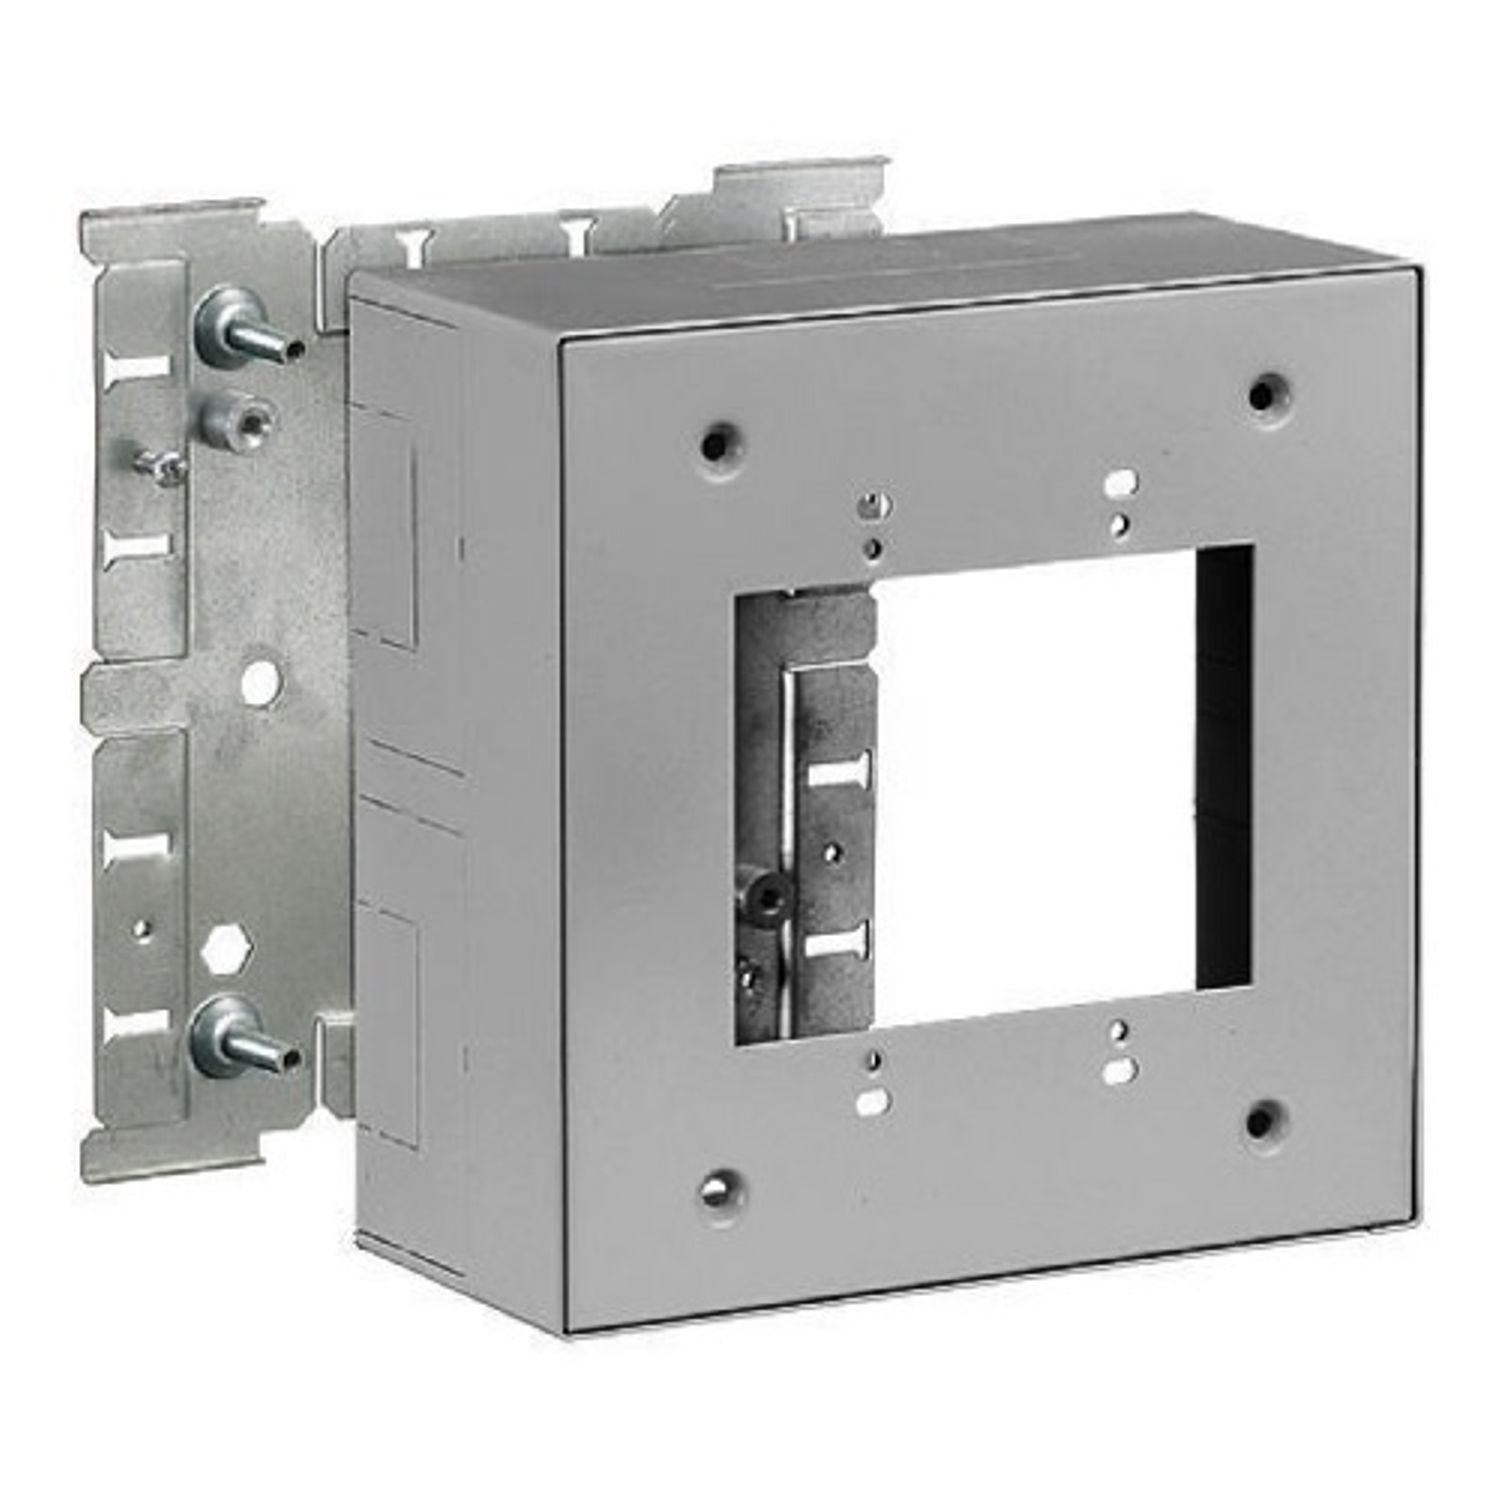 Wiring Device Kellems Hbl3000 2 Gang Extra Deep Switch And 4 Receptacle Box 638 In L X W 3 H Steel